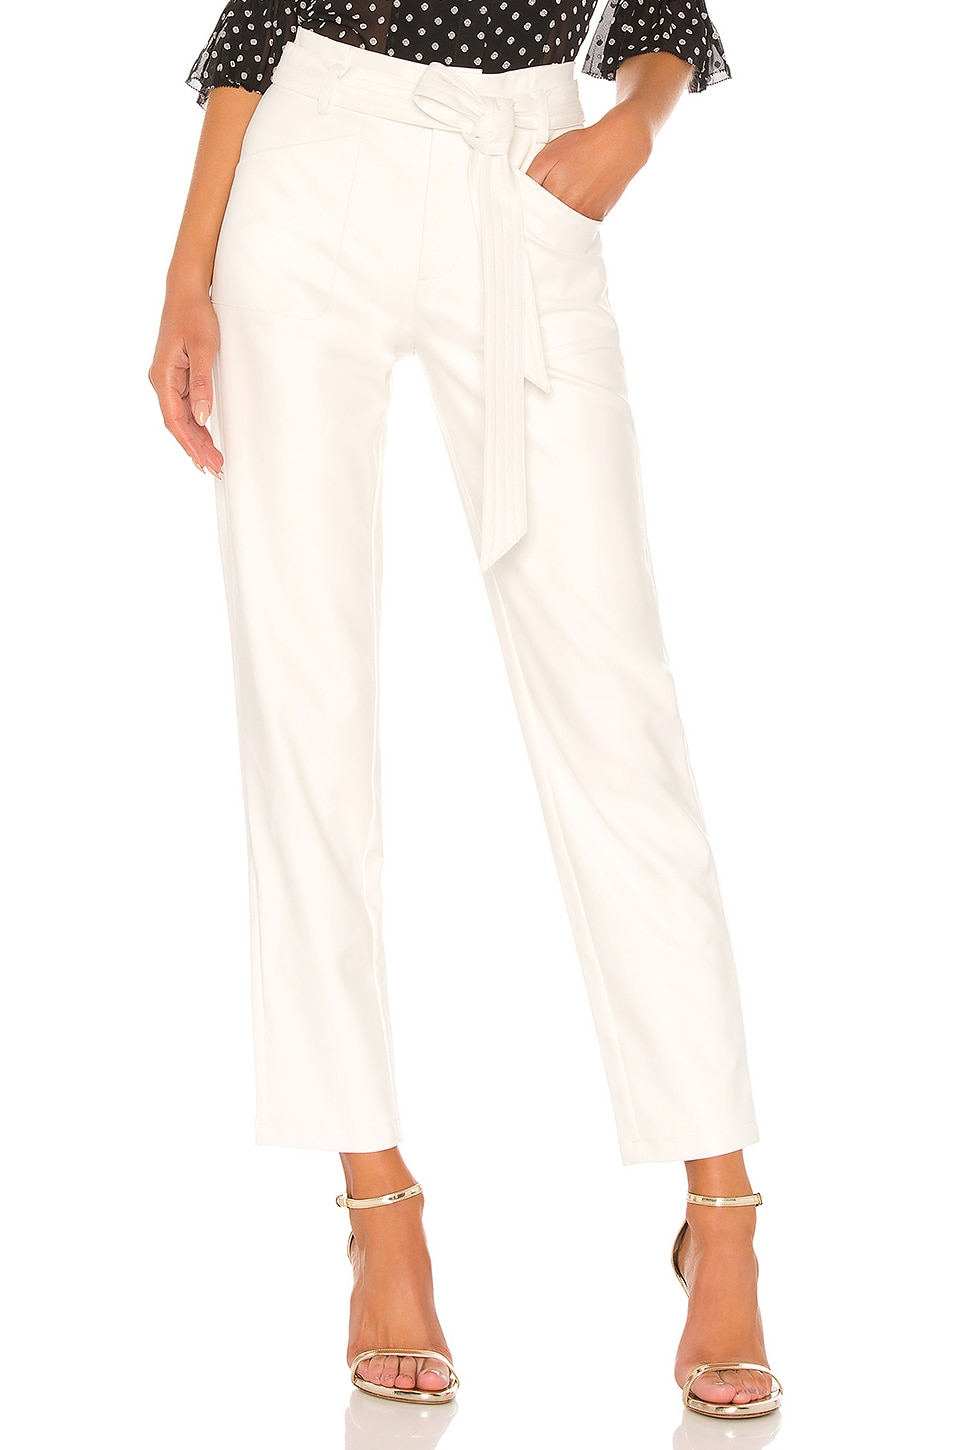 Alexis Castile Vegan Leather Pant in White